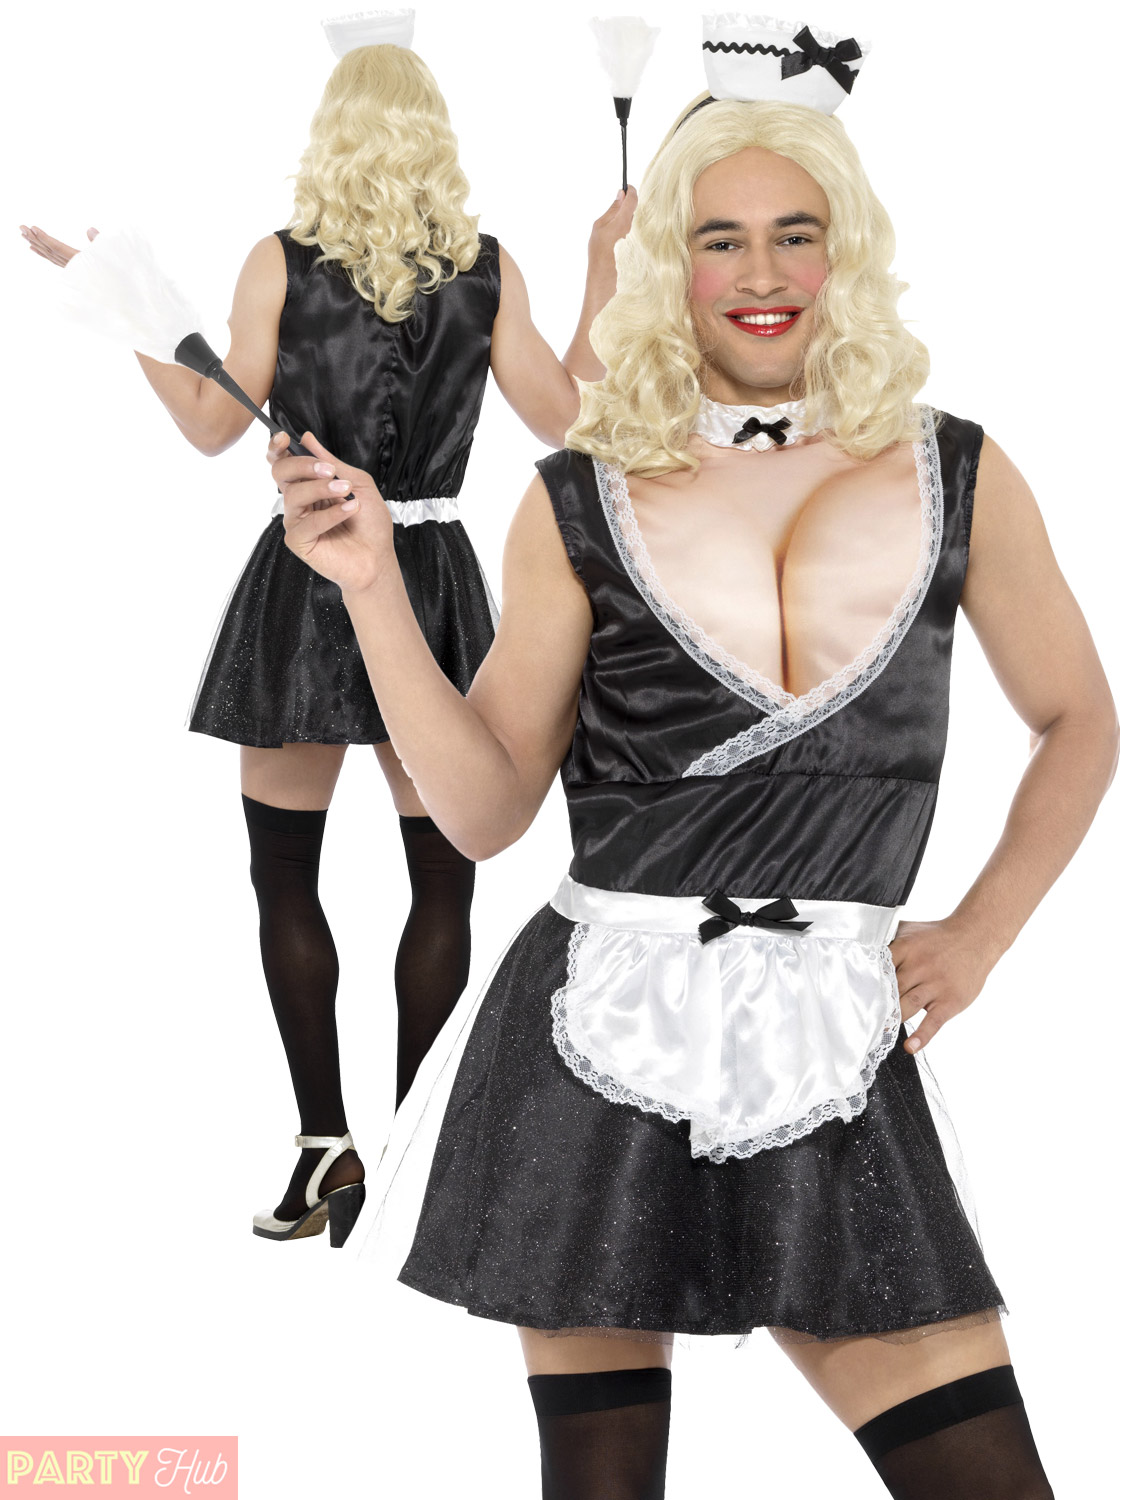 Remarkable, Wife french maid costume ideal answer